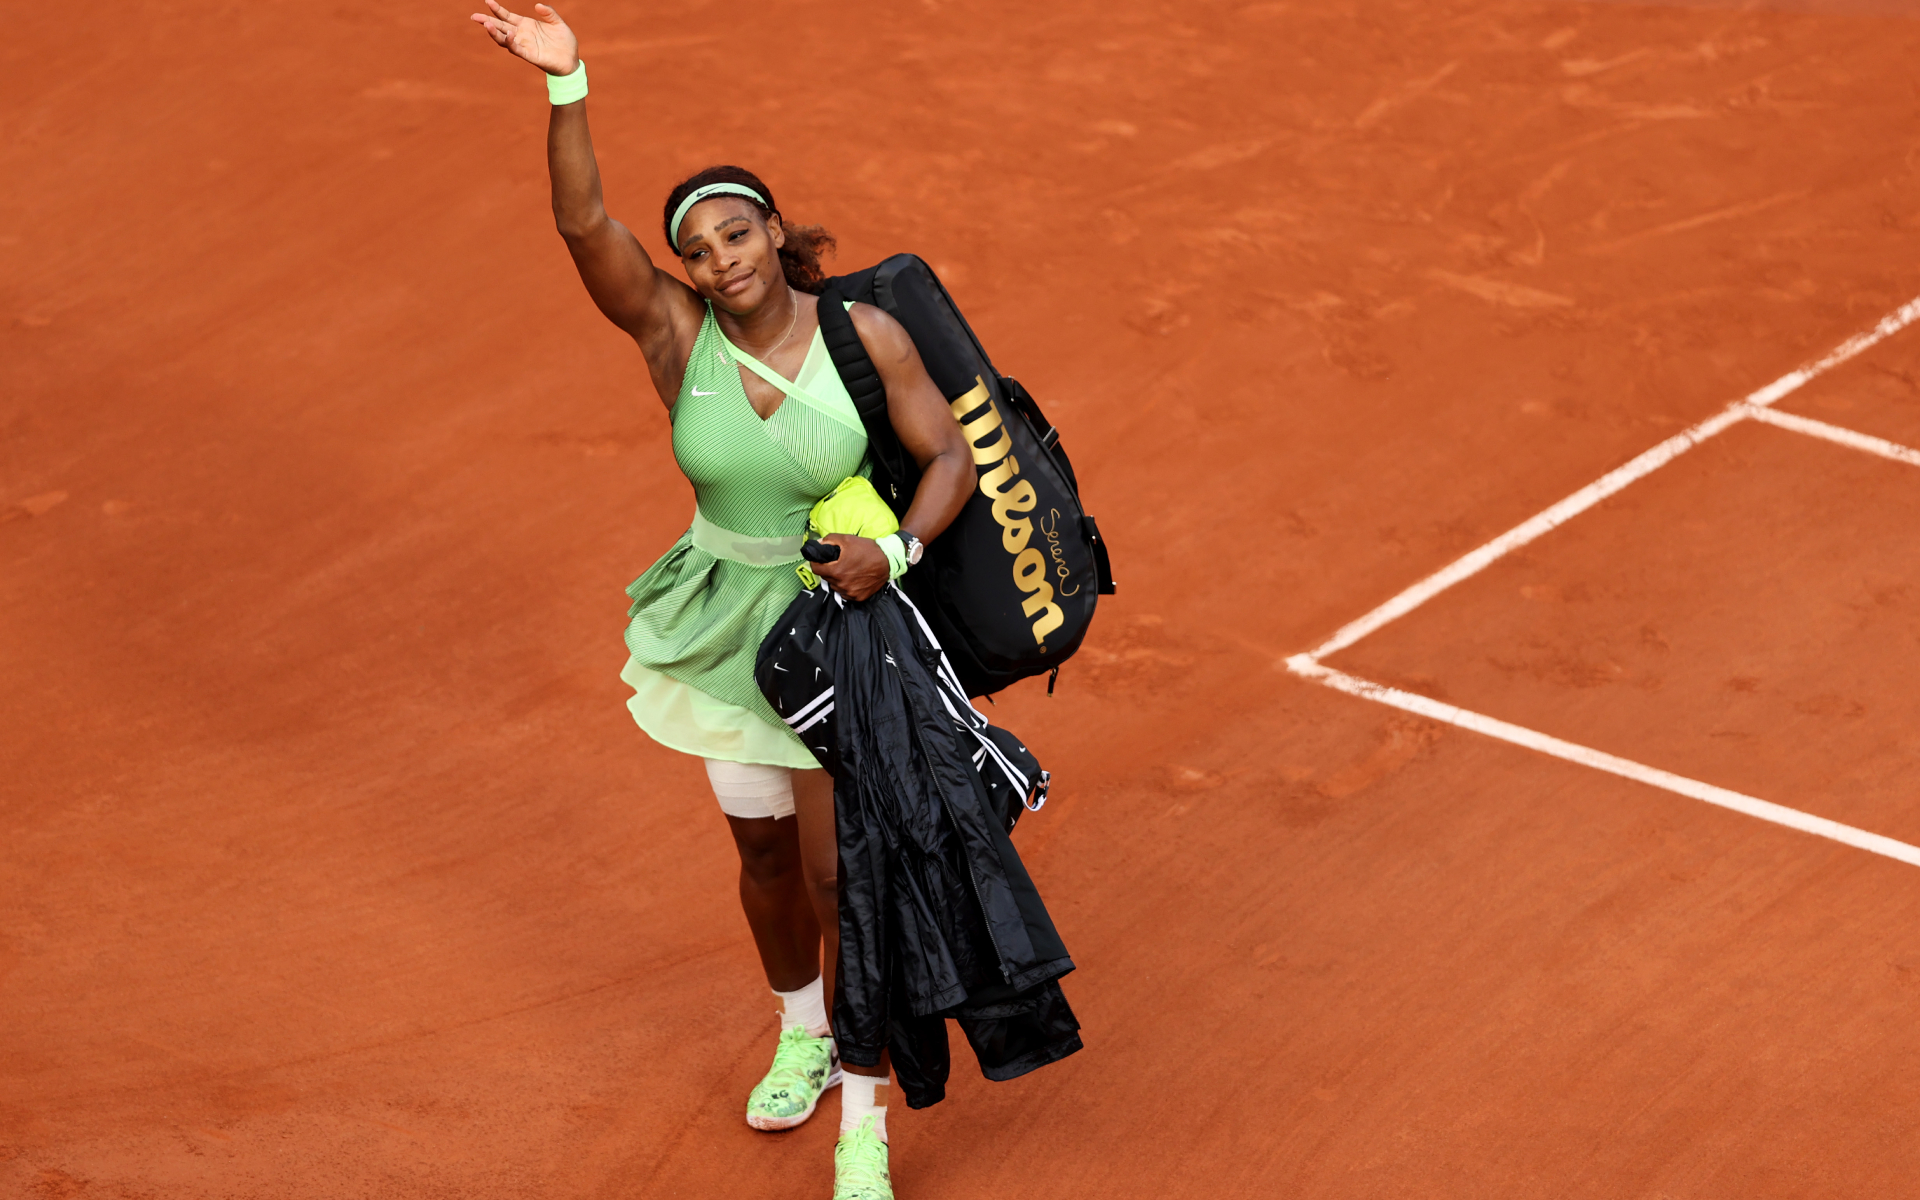 Фото:Clive Brunskill/Getty Images